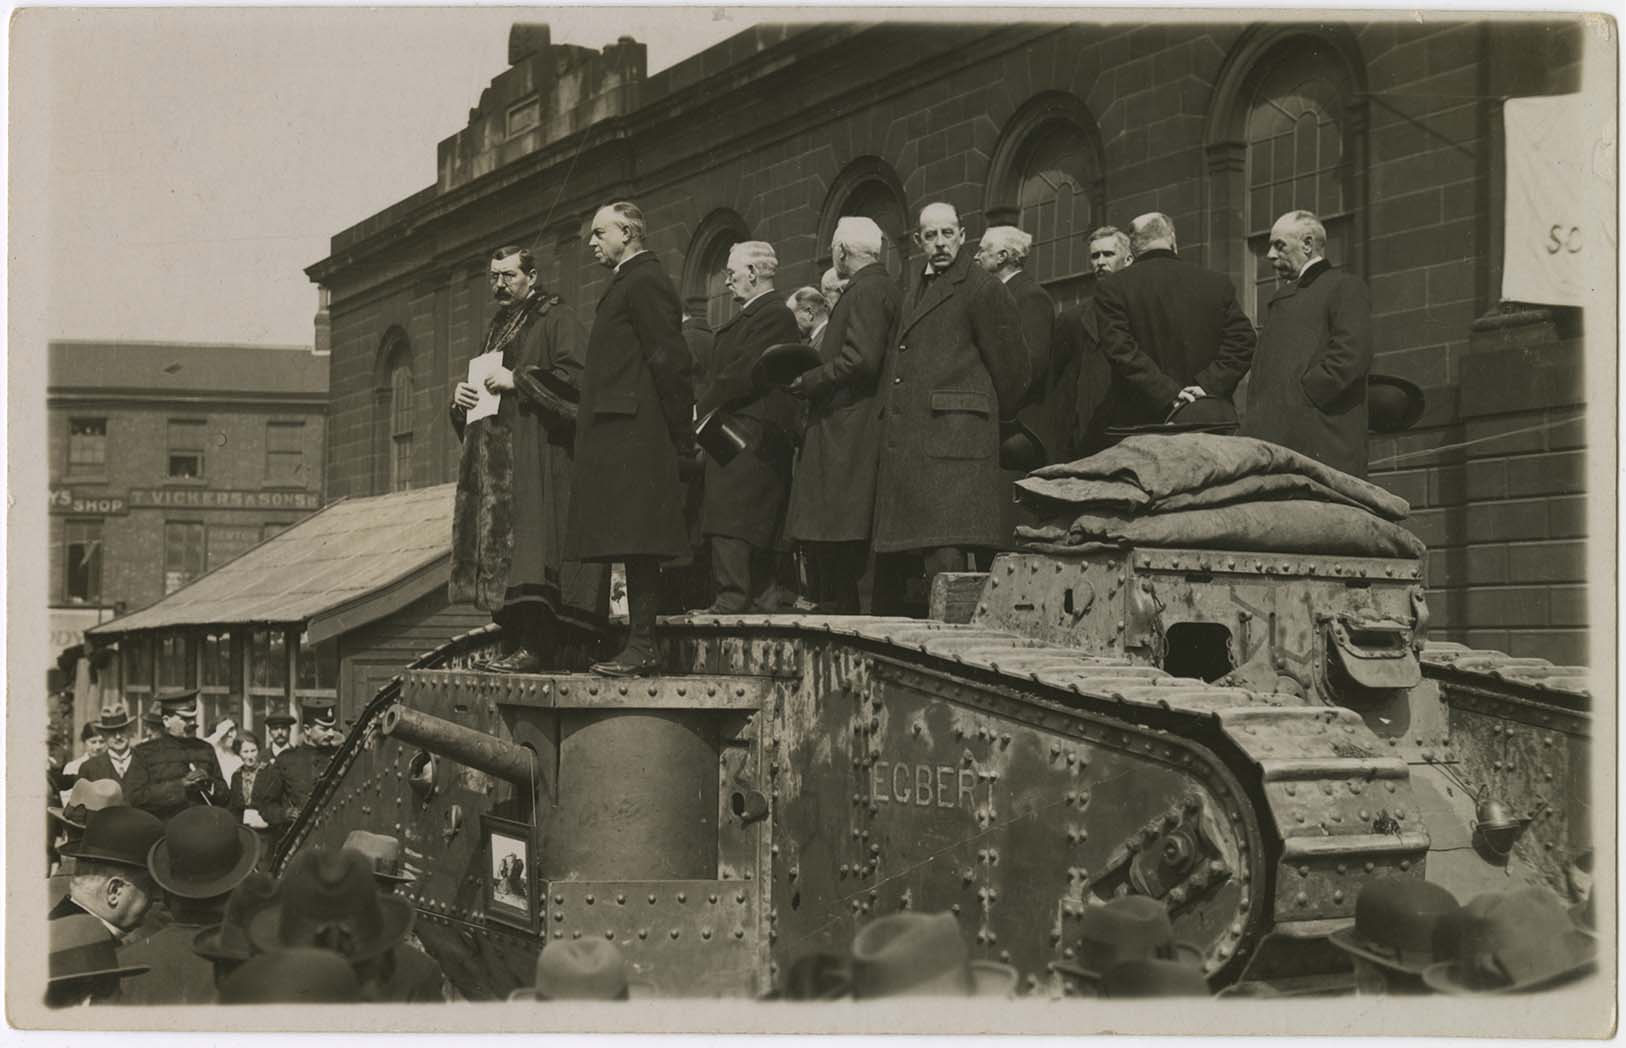 a photo of a group of men with overcoast standing on top of a First World War tank